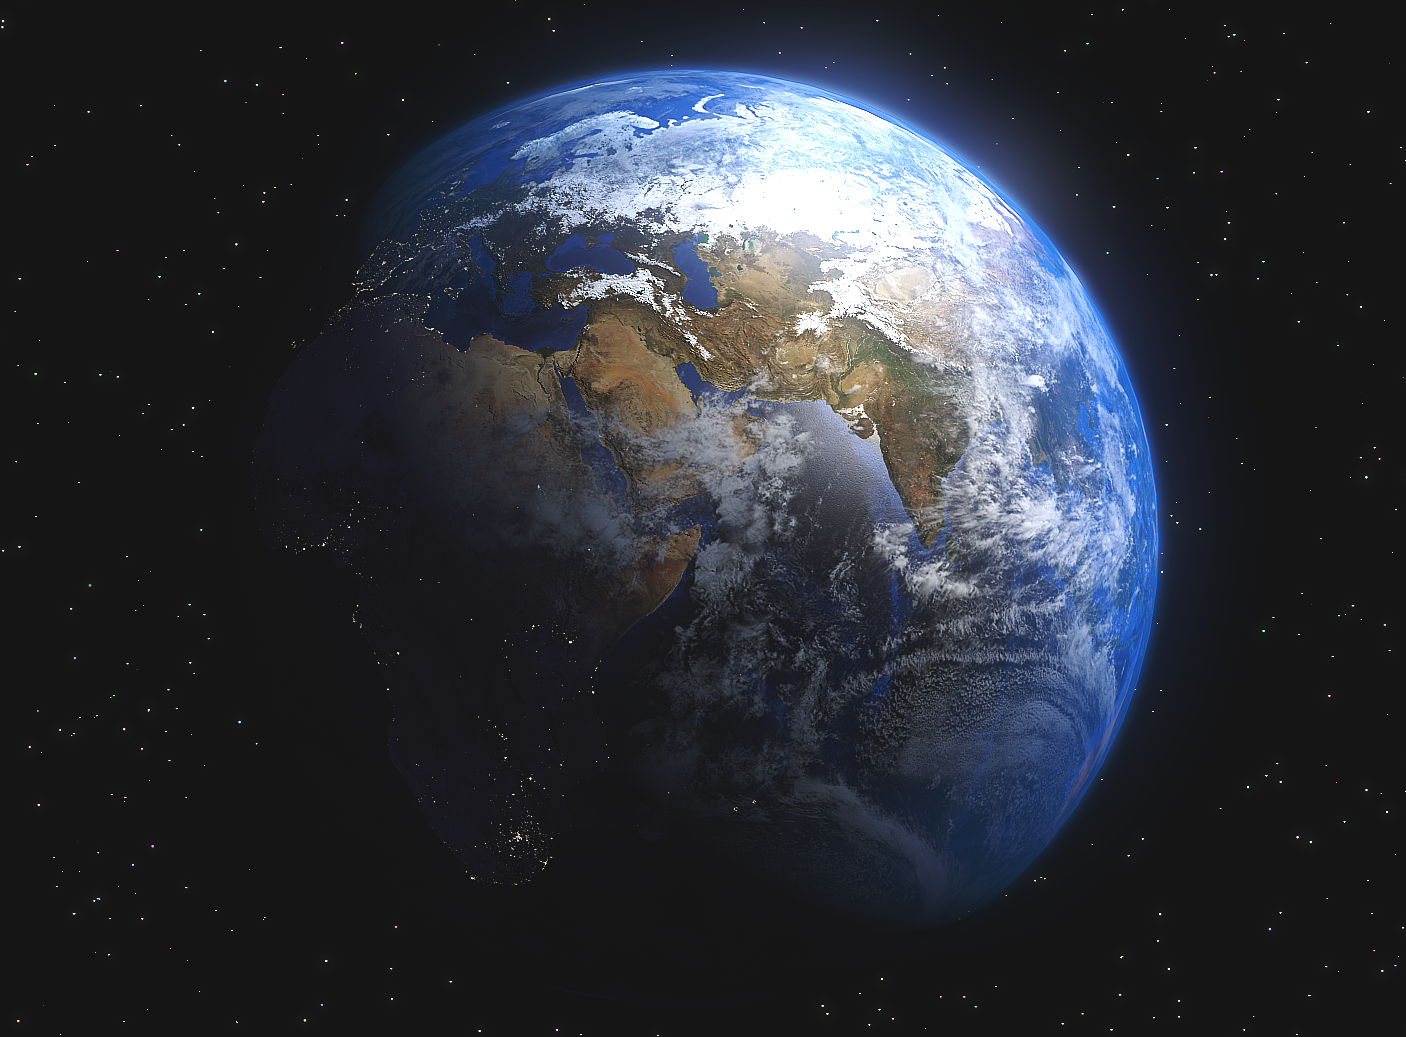 planet_earth_by_roadtovictory-d4rcogl